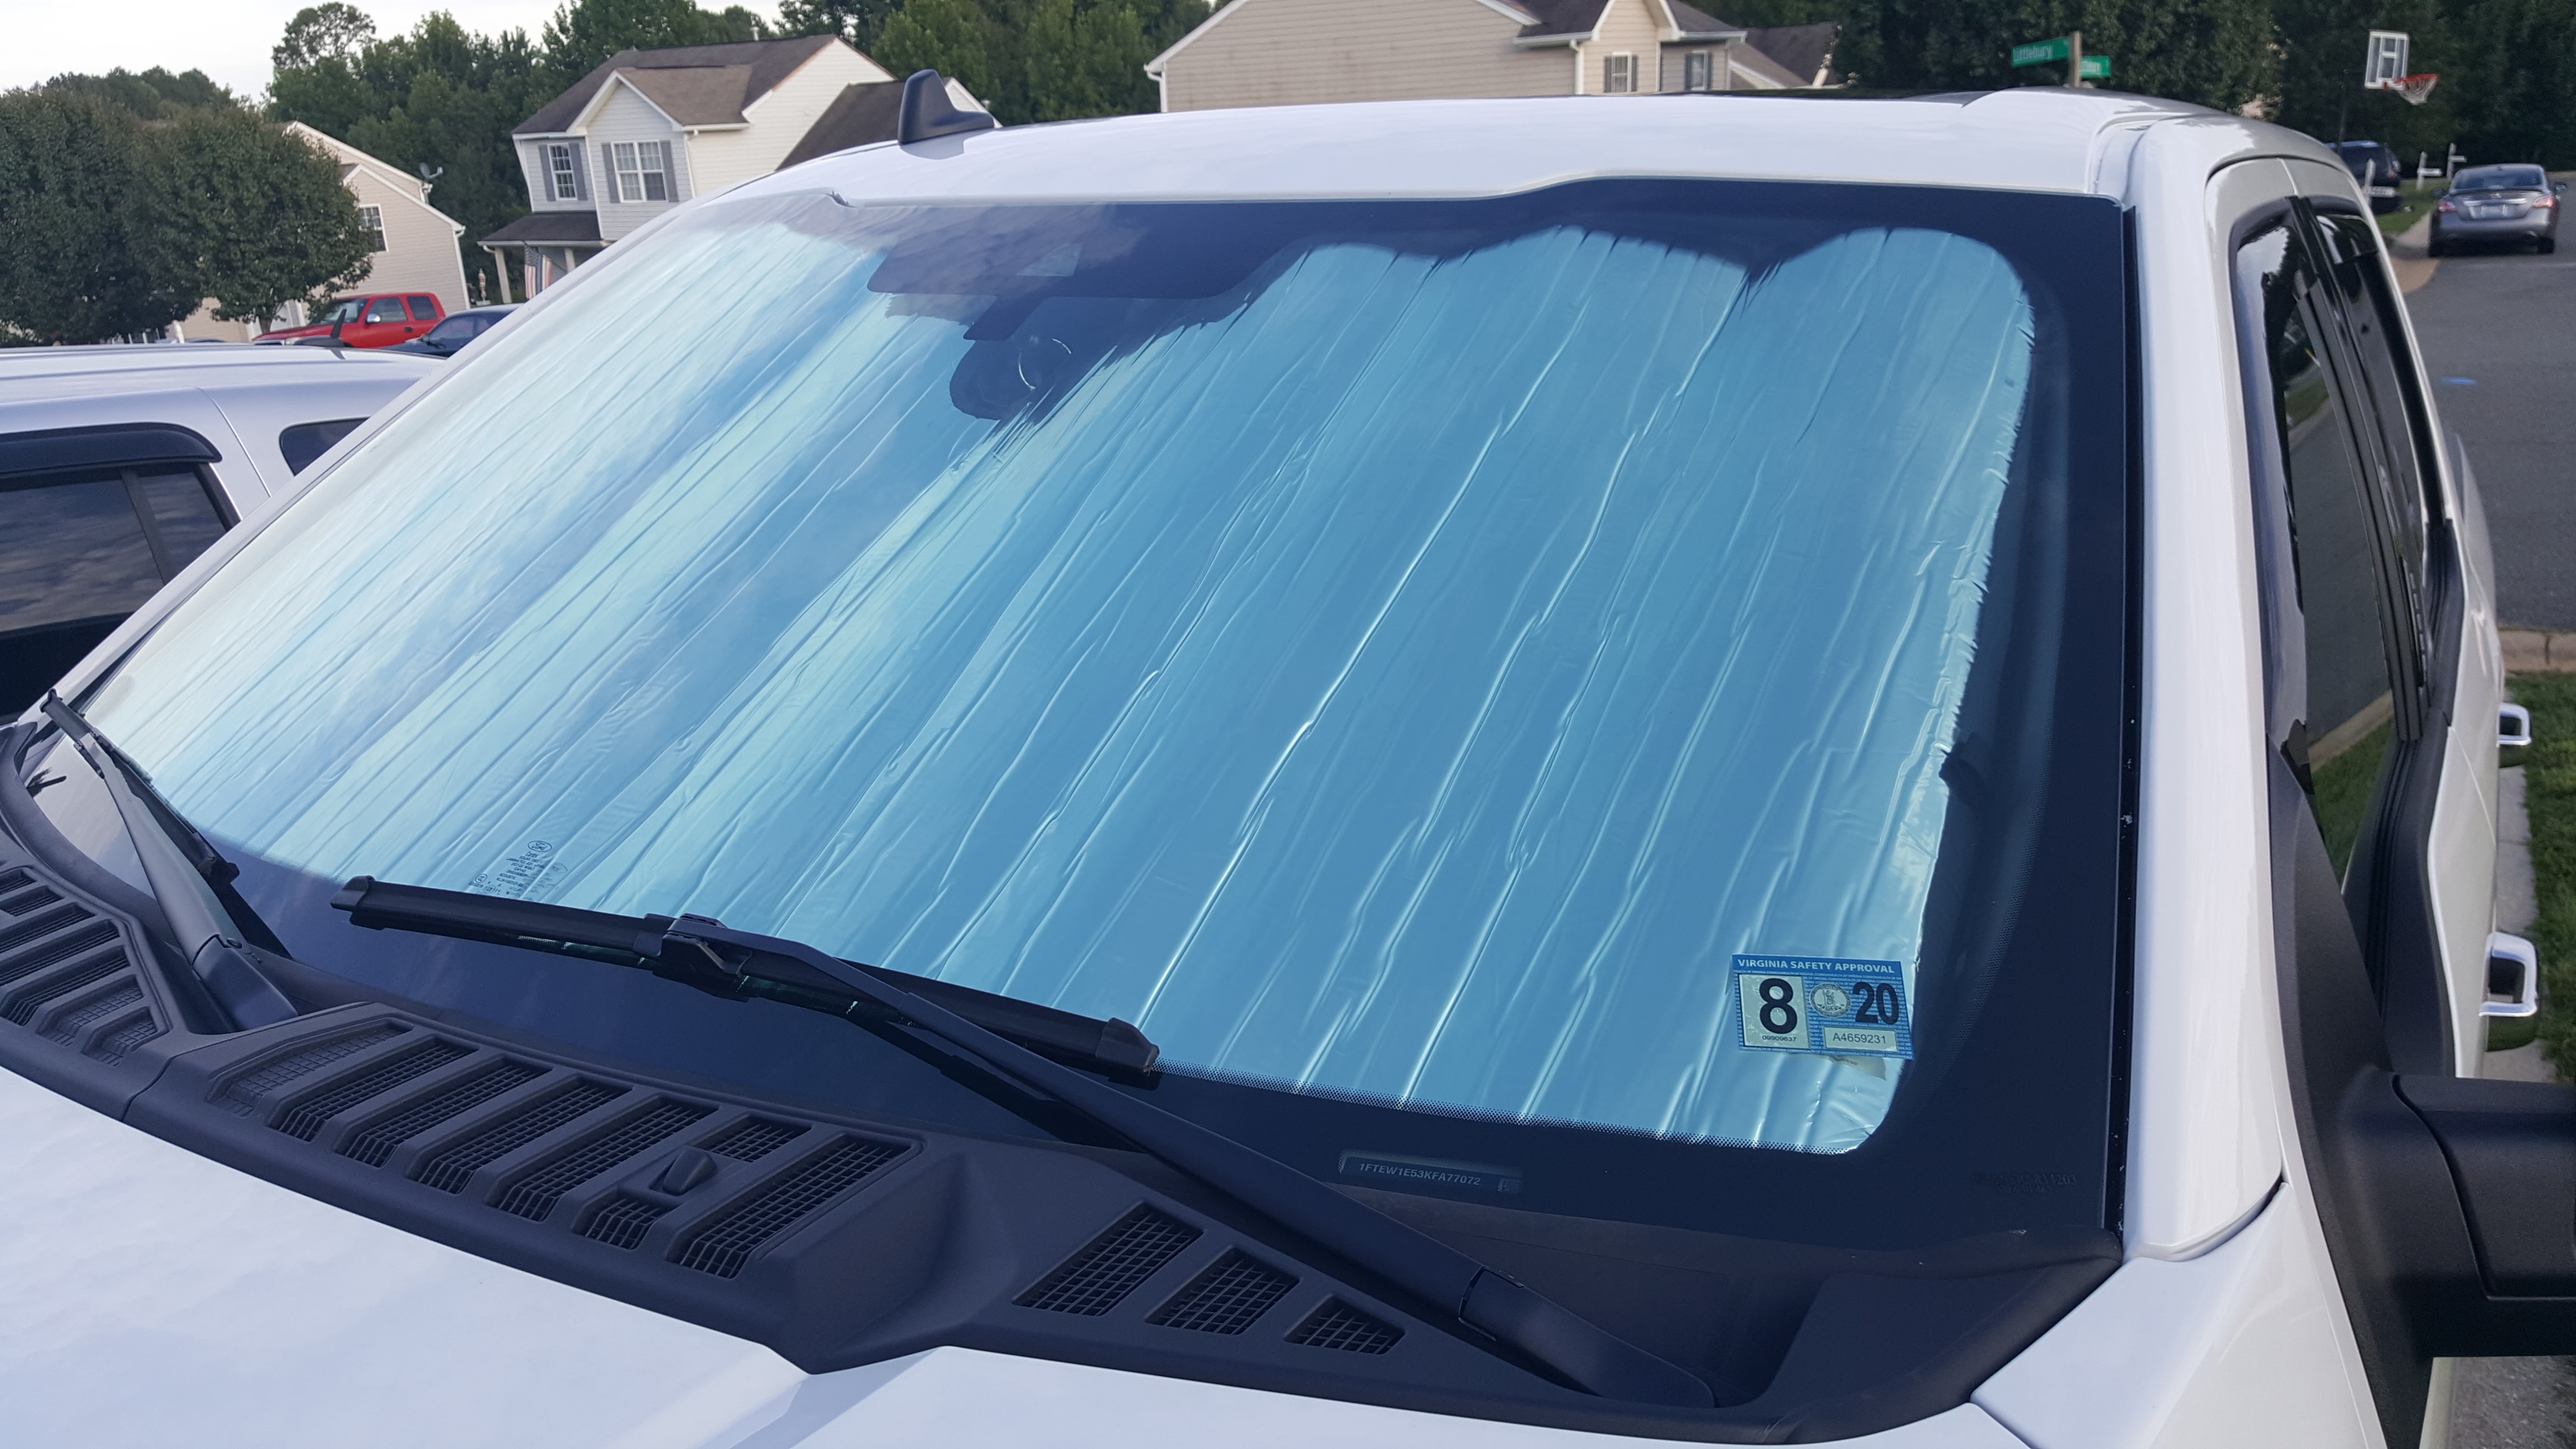 100/% New Awesome Black Windshield Visor To Keep Your Car Cooler In Warm Weather